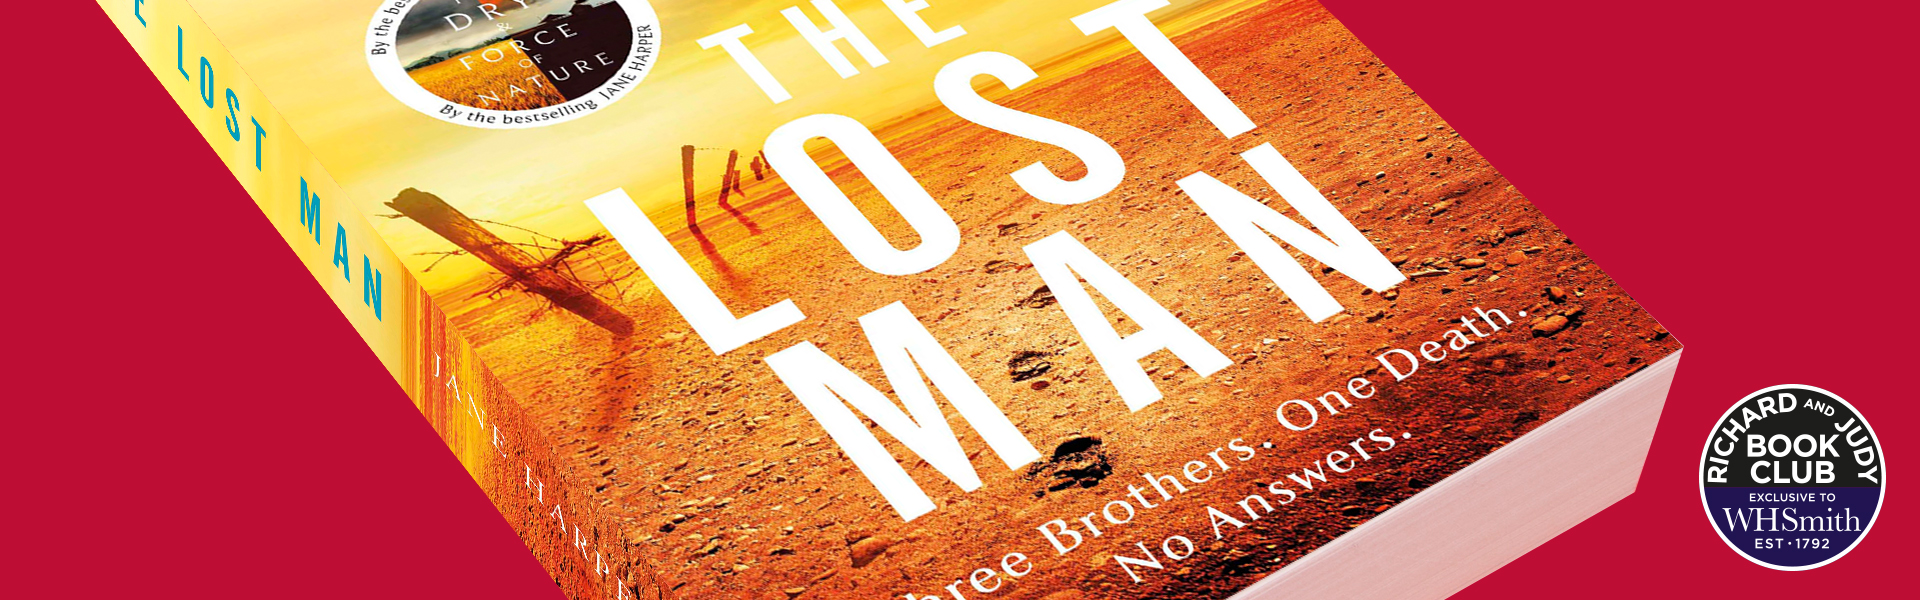 Richard and Judy Introduce The Lost Man by Jane Harper